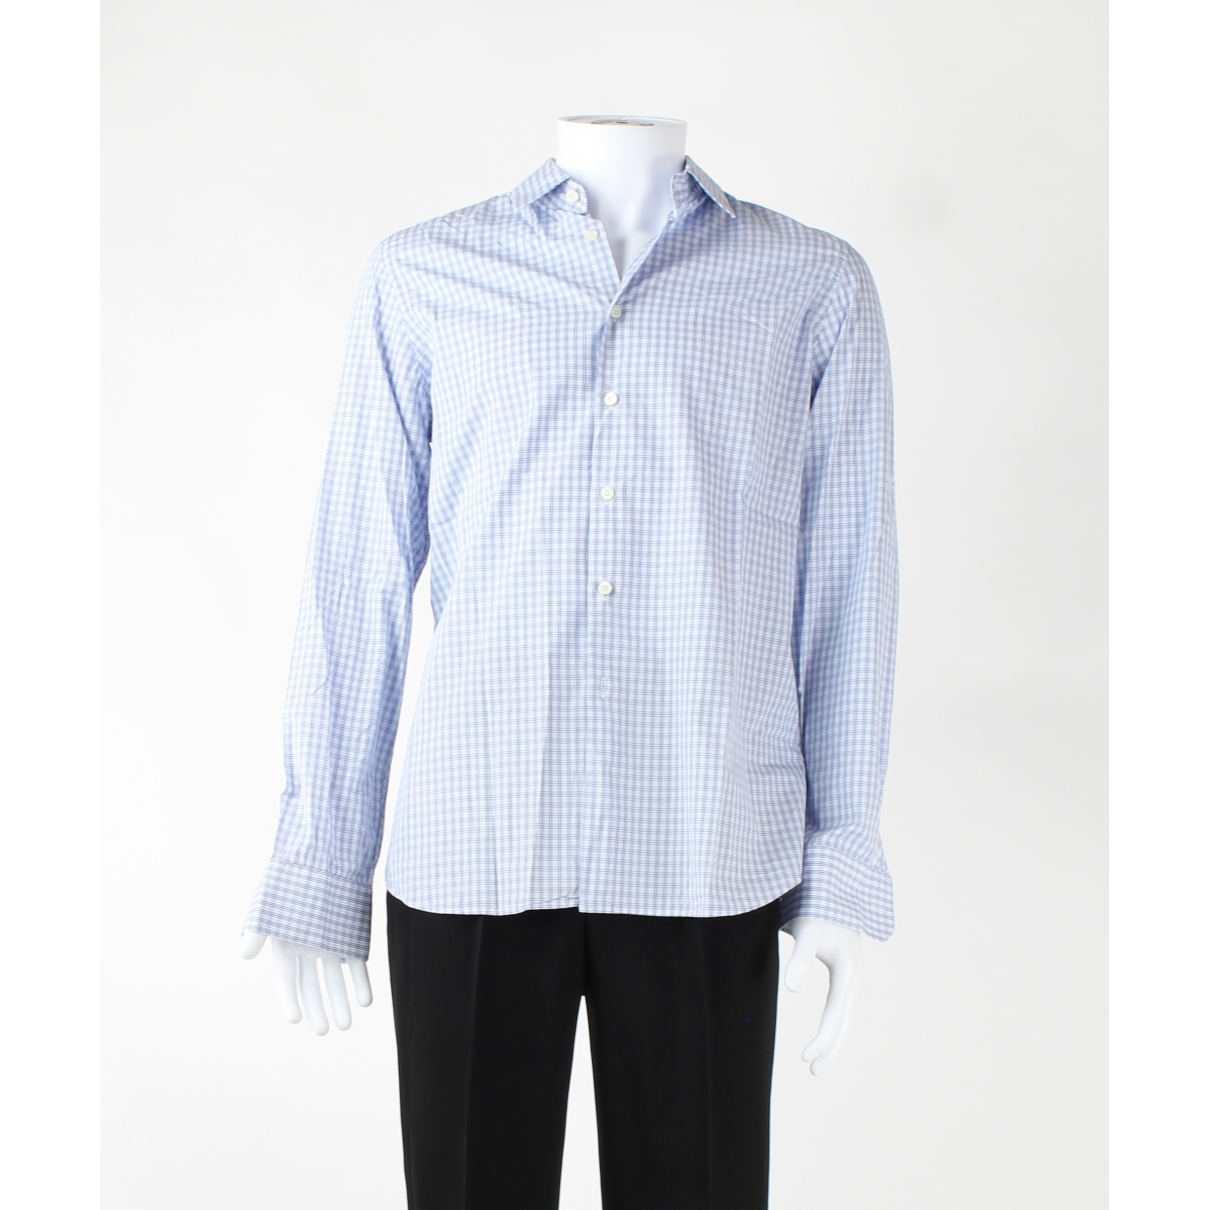 Prada \N Blue Cotton Shirts for Men 41 EU (tour de cou / collar)